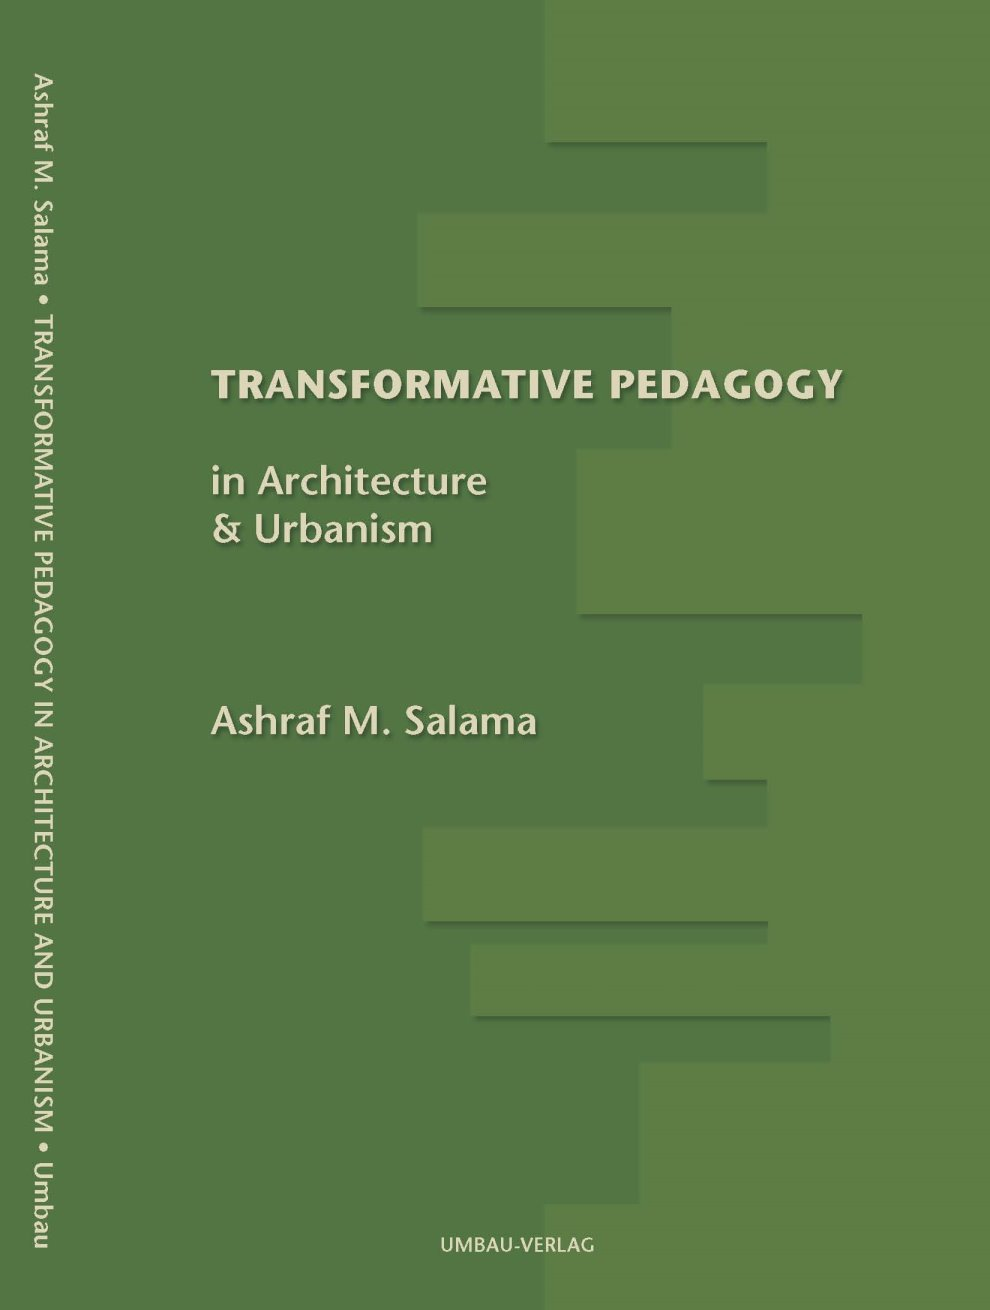 Transformative Pedagogy in Architecture & Urbanism